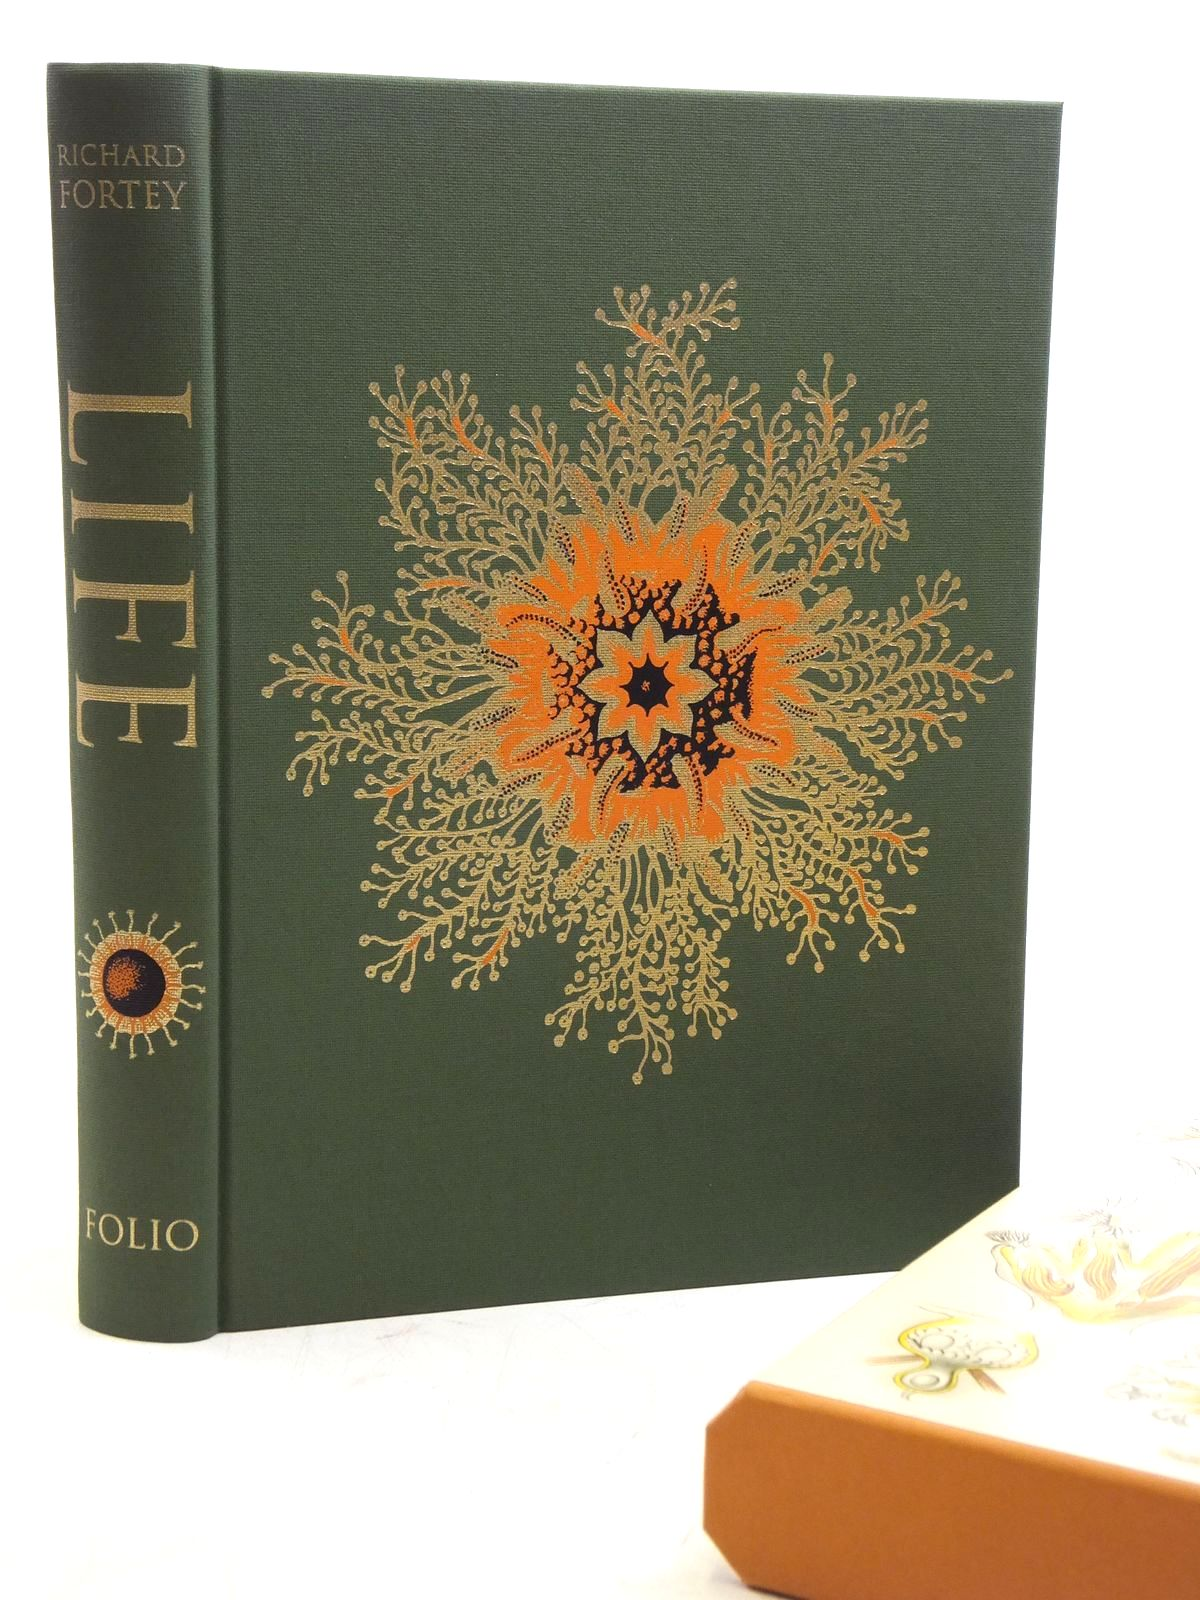 Photo of LIFE written by Fortey, Richard published by Folio Society (STOCK CODE: 2120473)  for sale by Stella & Rose's Books